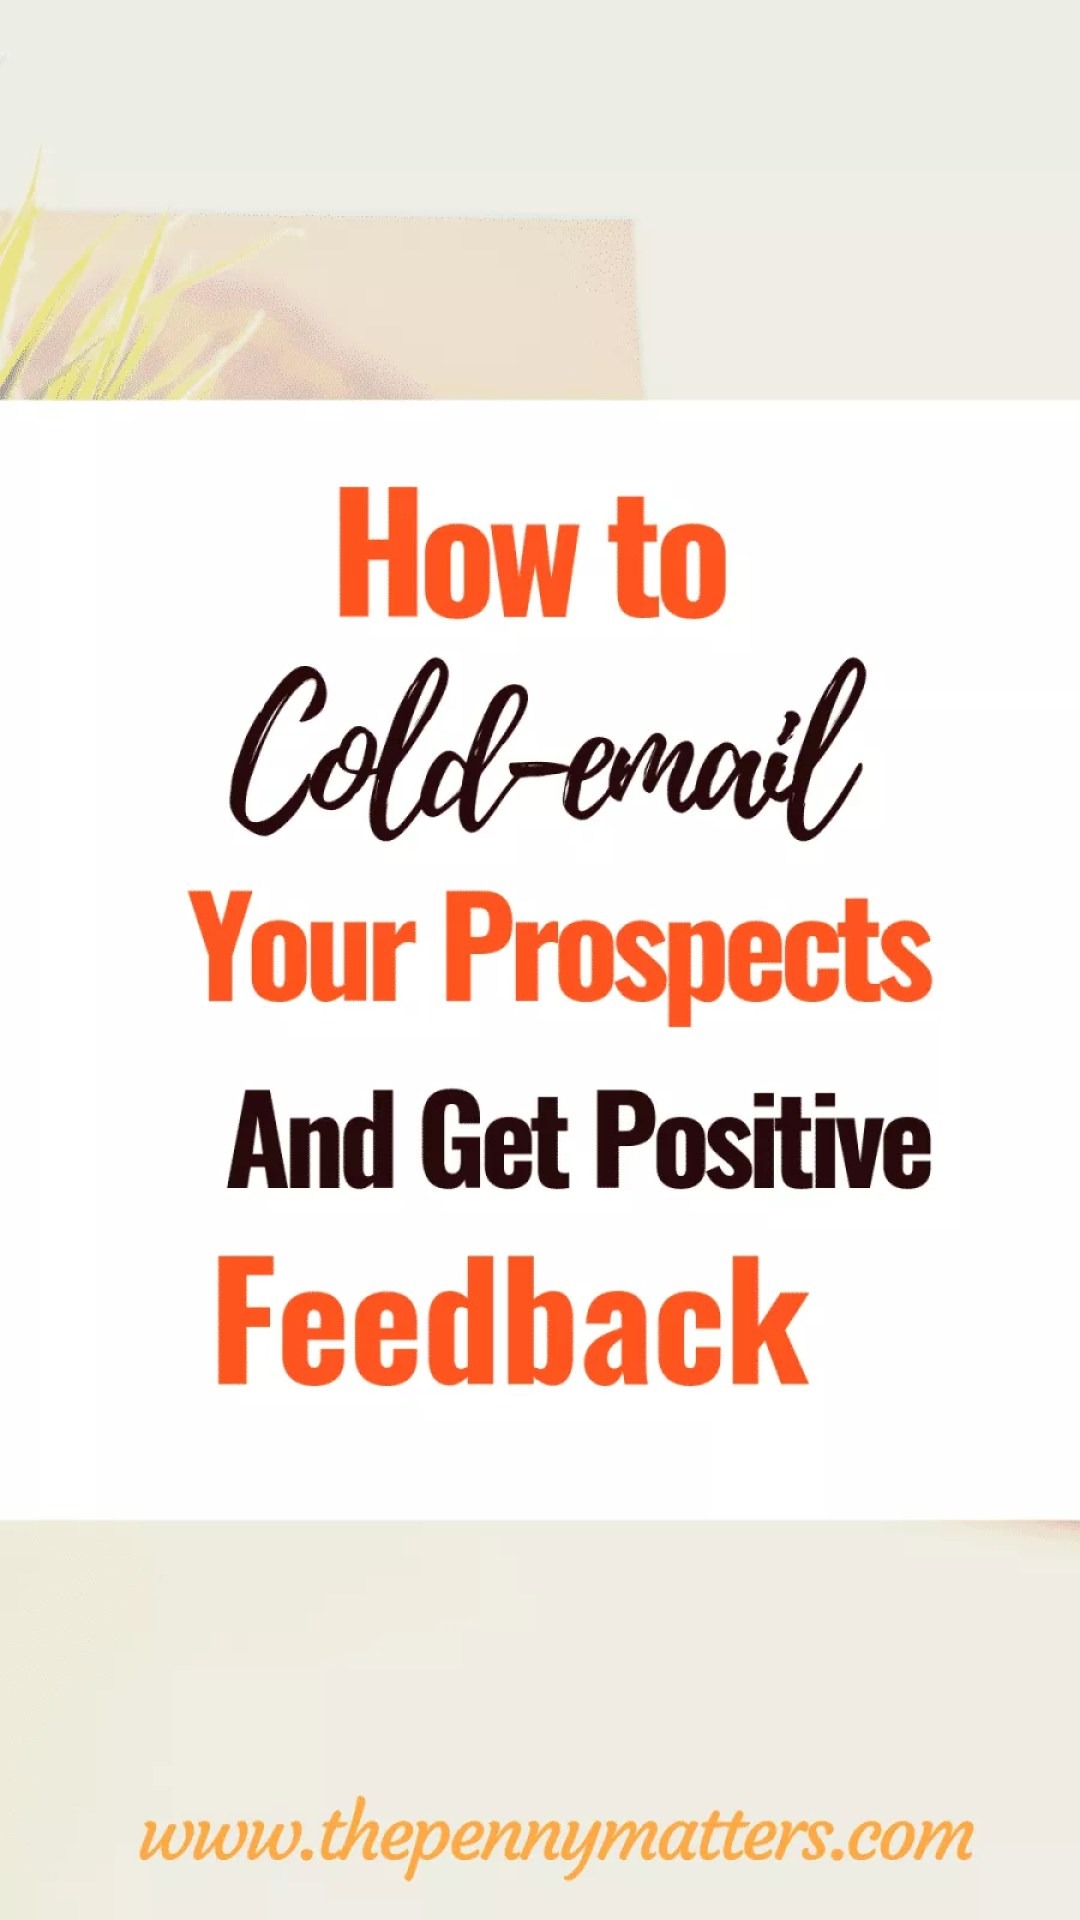 Cold emailing can be pretty intimidating at first. However, with the right cold emailing tips at your disposal, it shouldn't. This massive Pitching guide for freelancers will start you off the fence